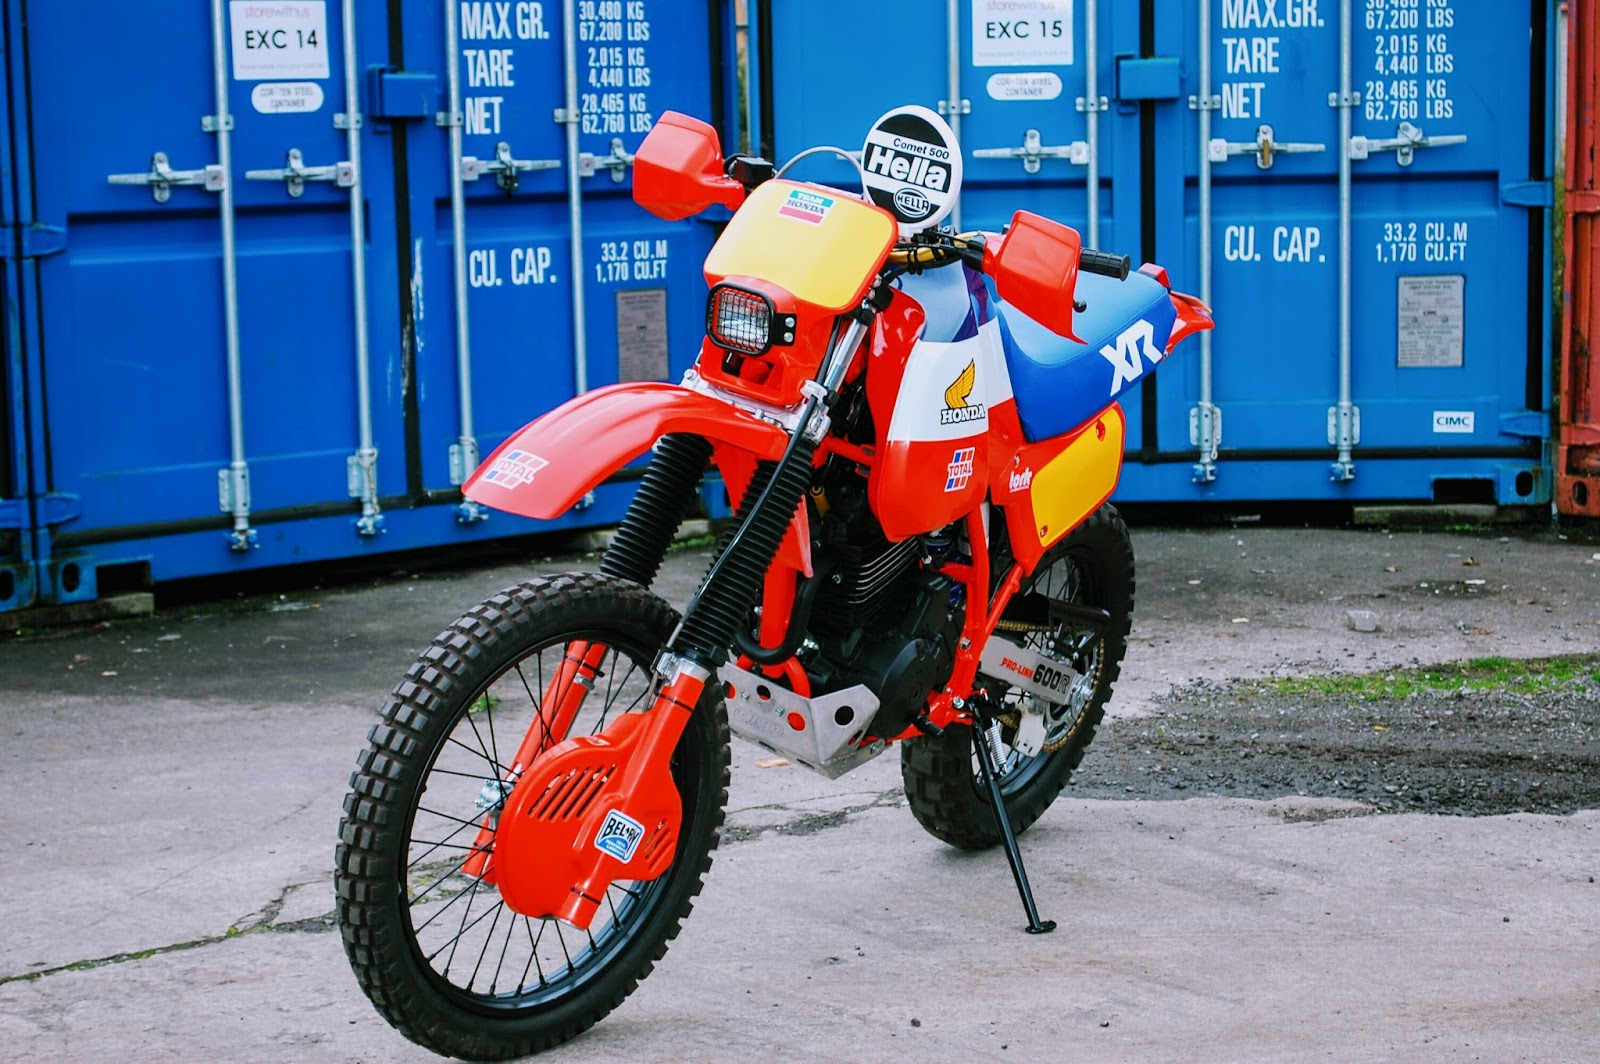 Honda Xl600 Dakar By Andrew Greenland Bikebound